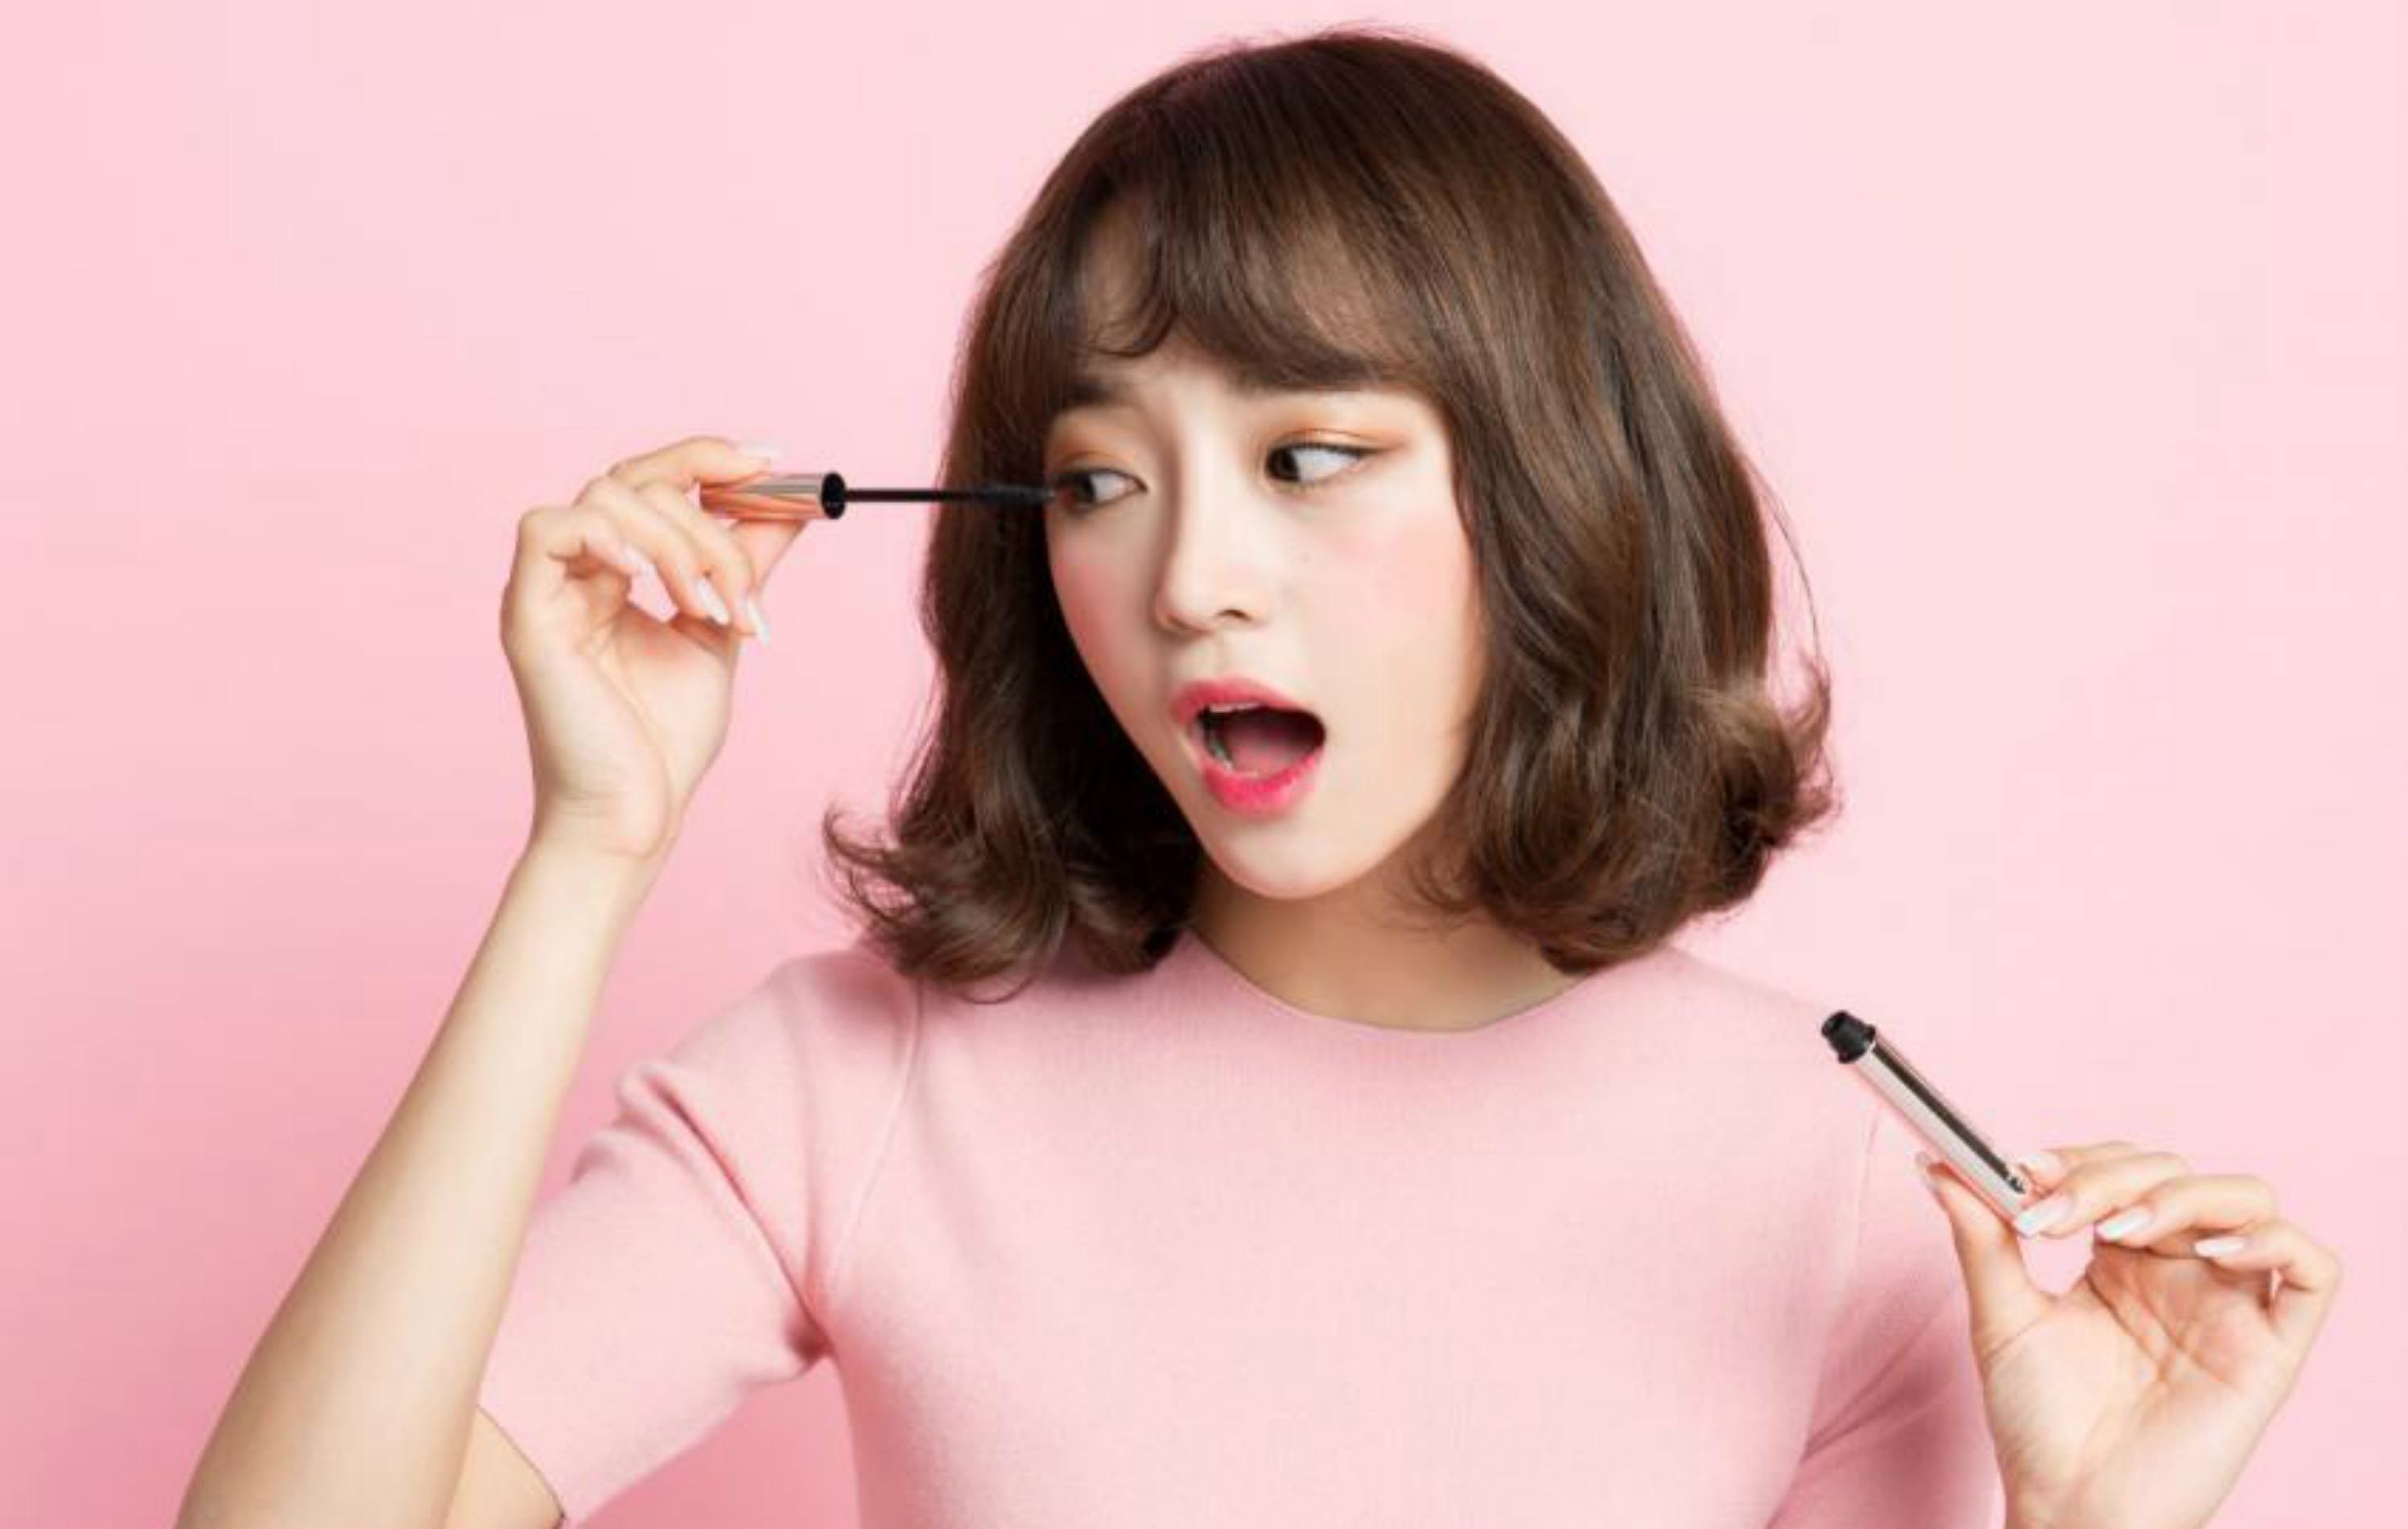 """gugudan's Kim Sejeong To Potentially Make Debut As Actress In Upcoming Drama """"School 2017"""""""